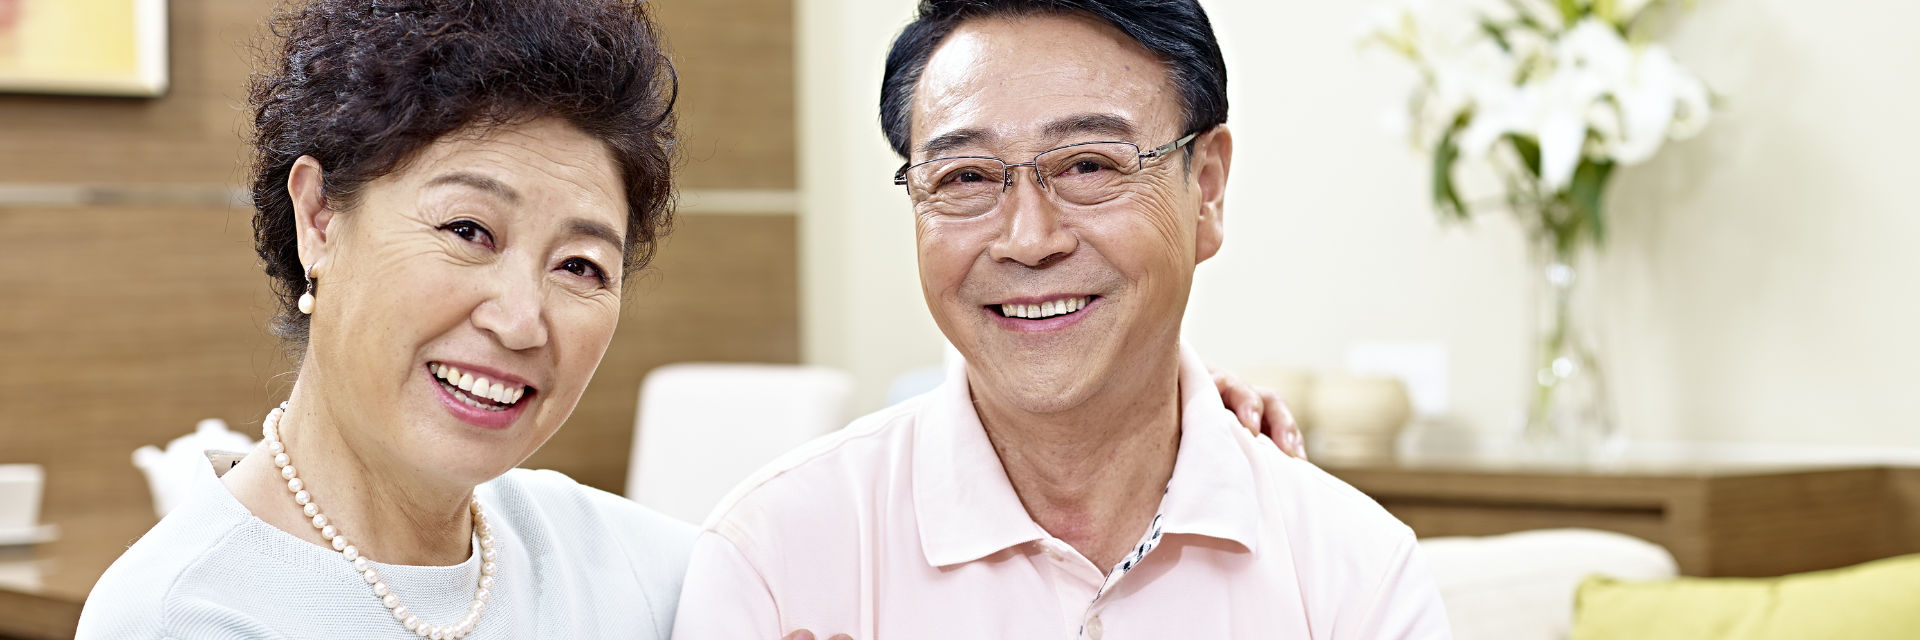 Smiling mature Asian couple with nice teeth after restoration dentistry treatment.